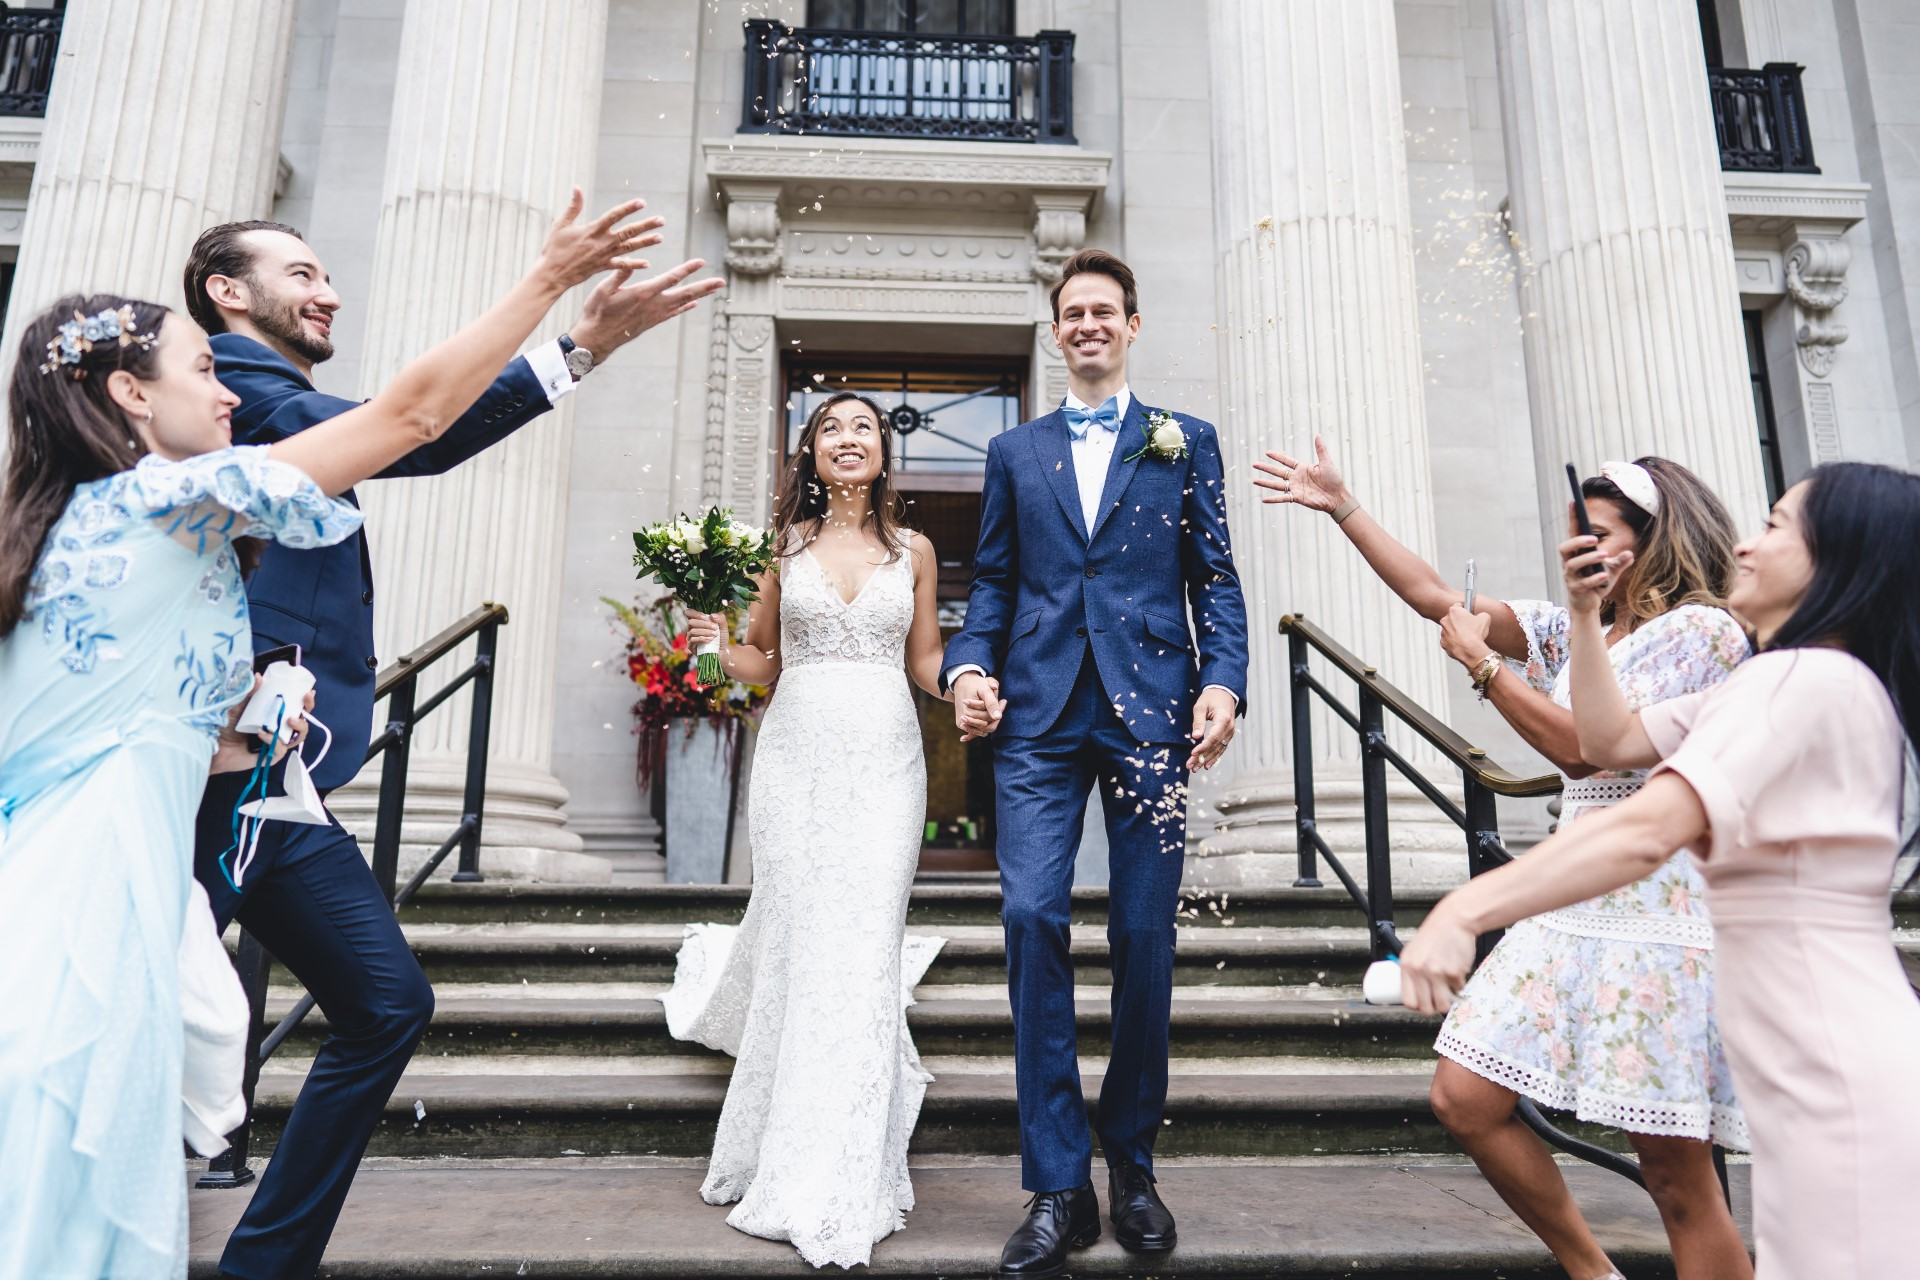 Wedding Pix from the Westminster Council House | The bride and groom are showered with confetti